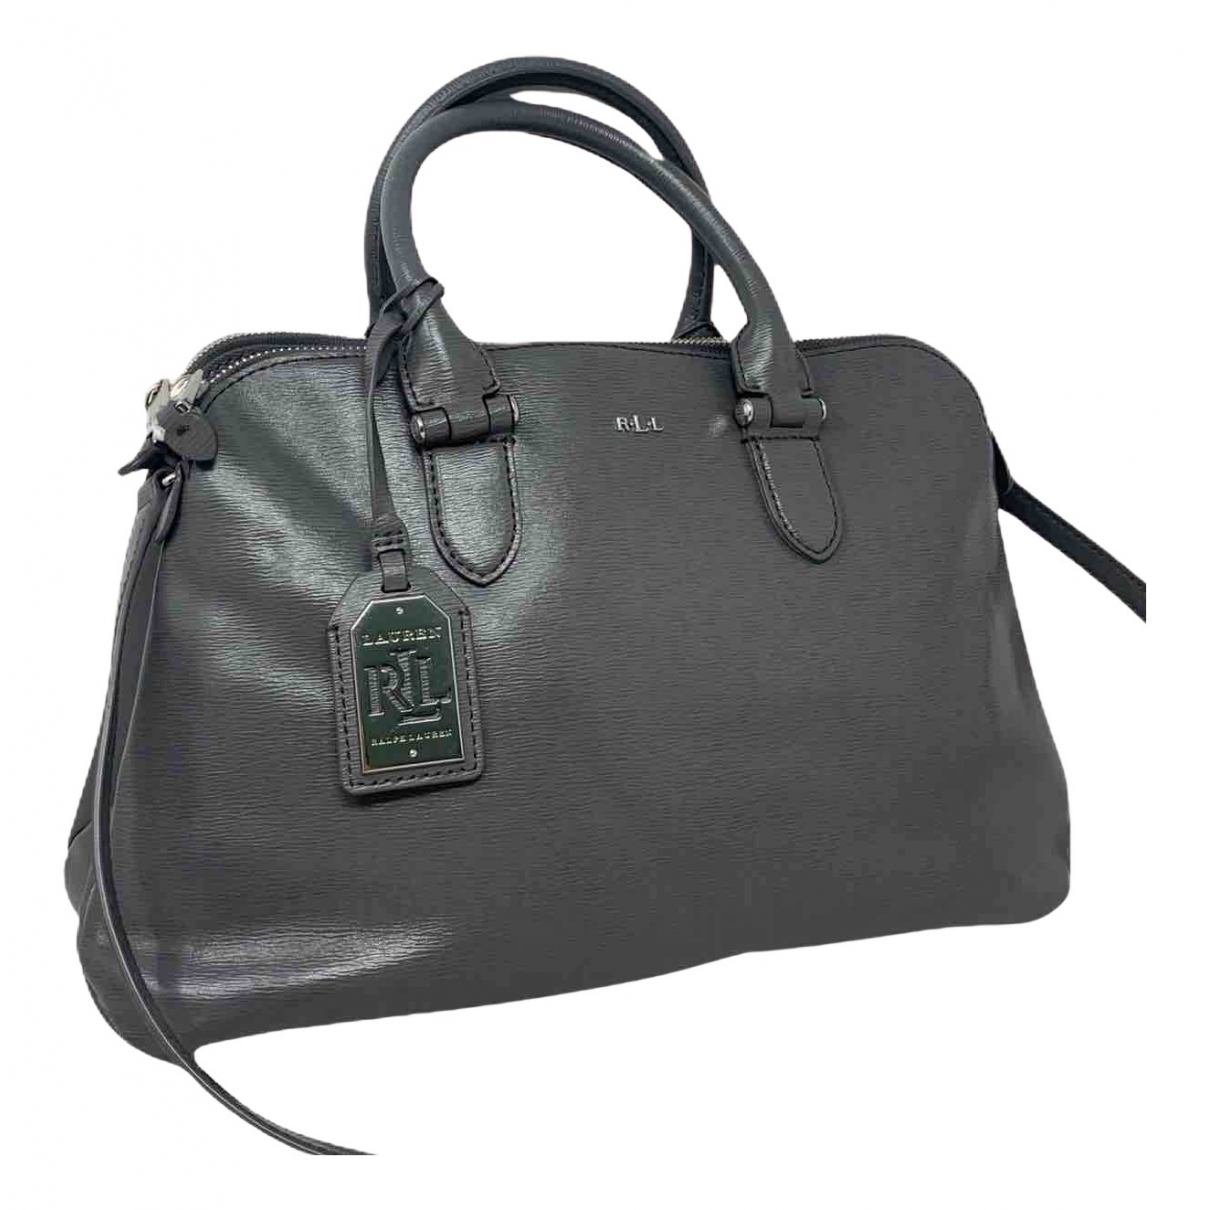 Lauren Ralph Lauren N Grey Leather handbag for Women N